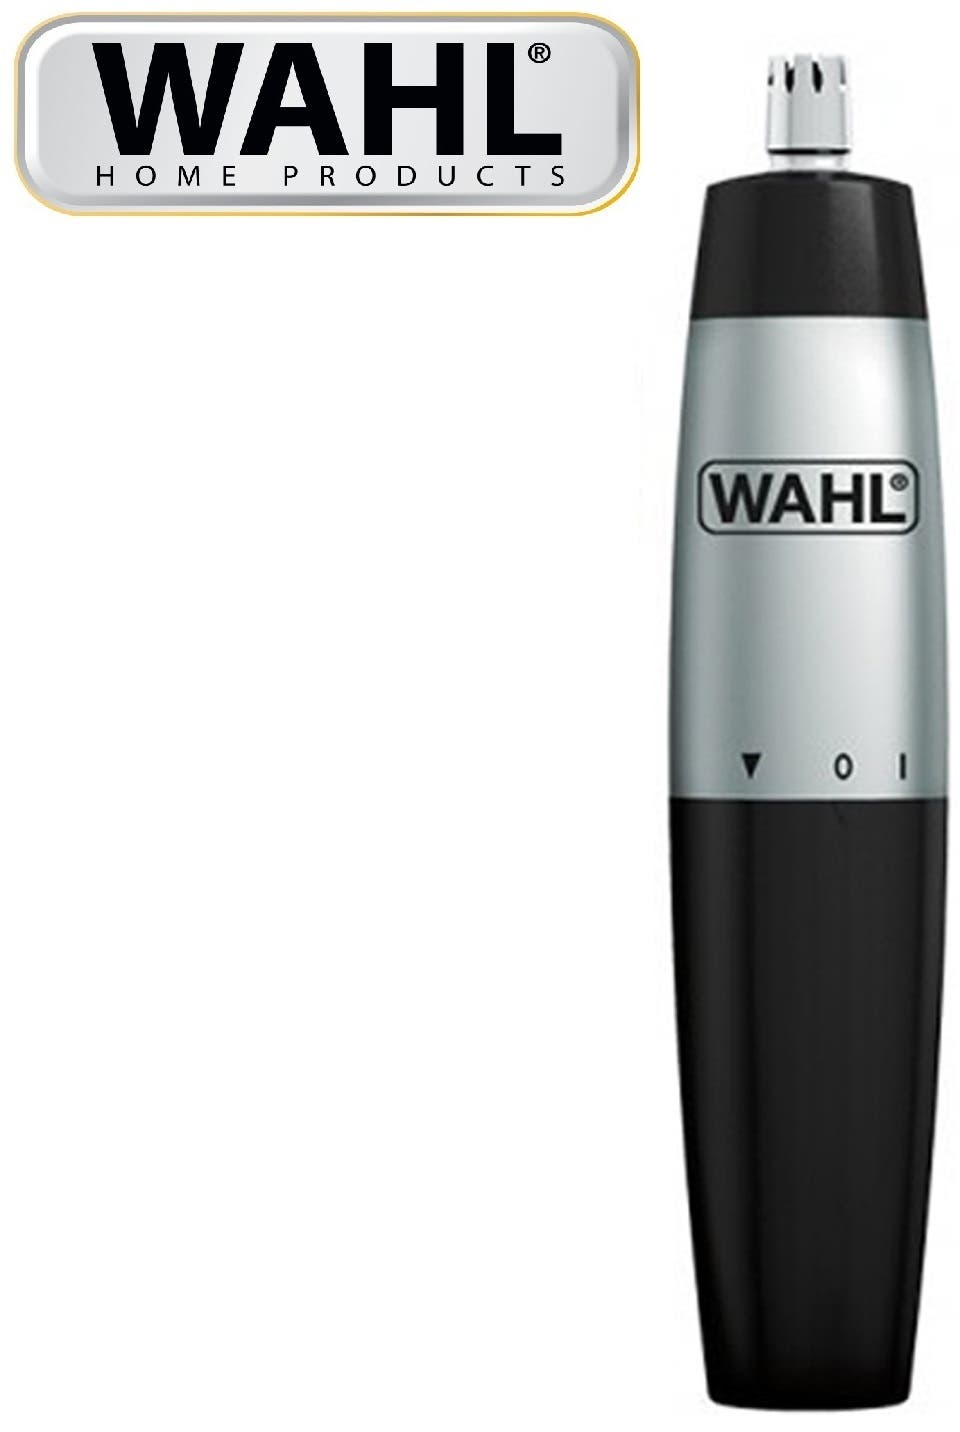 Wahl Nasal - Ear & Nasal Trimmer - Battery Operated Hair Trimmer 58155-100